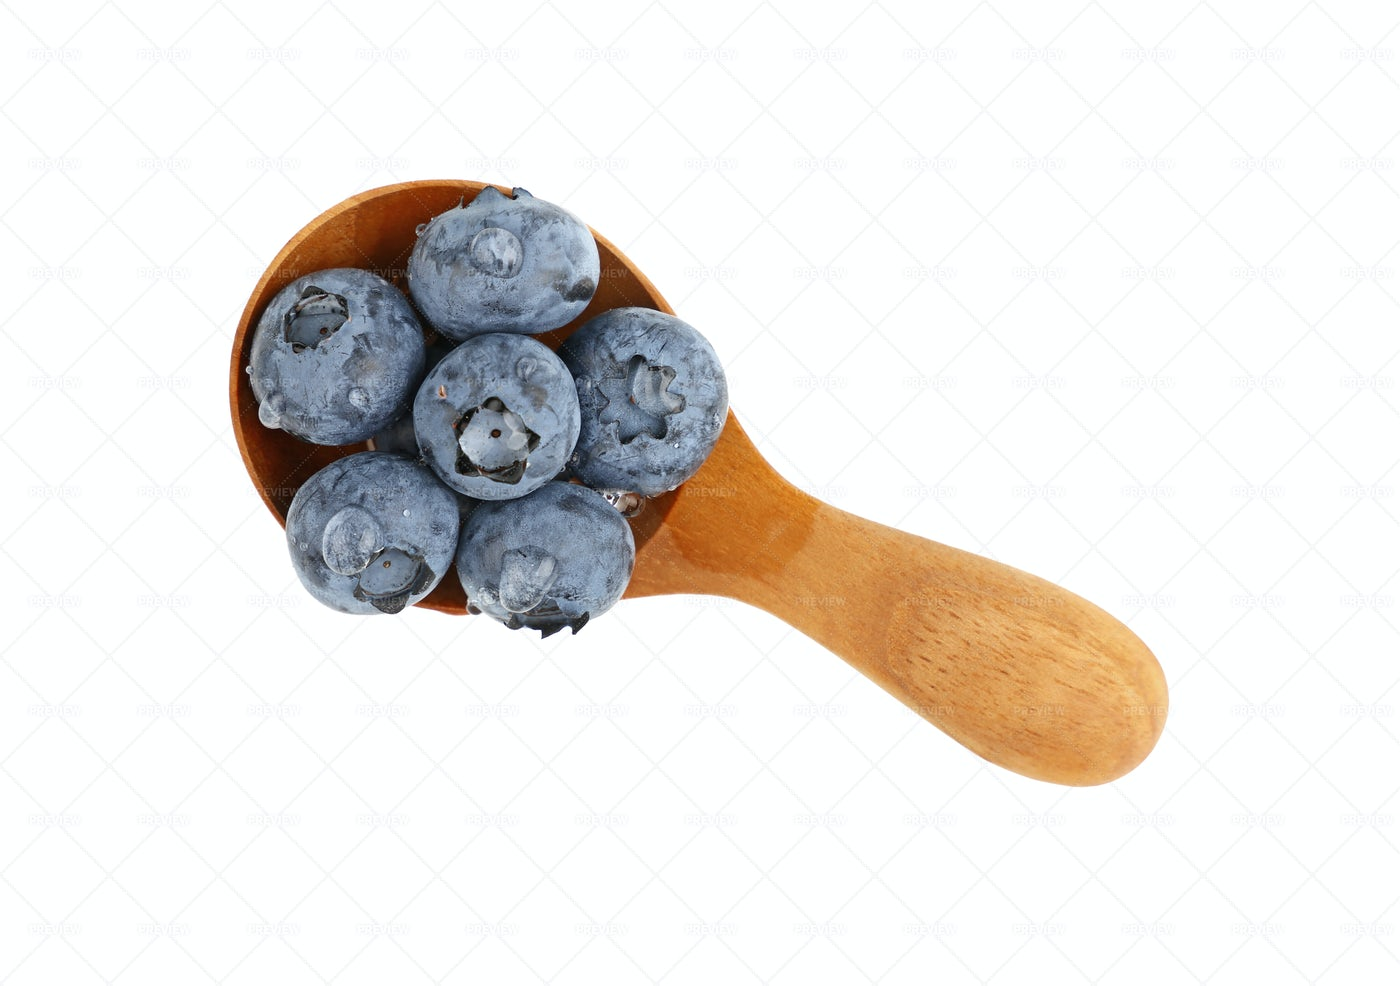 A Spoon Of Blueberries: Stock Photos